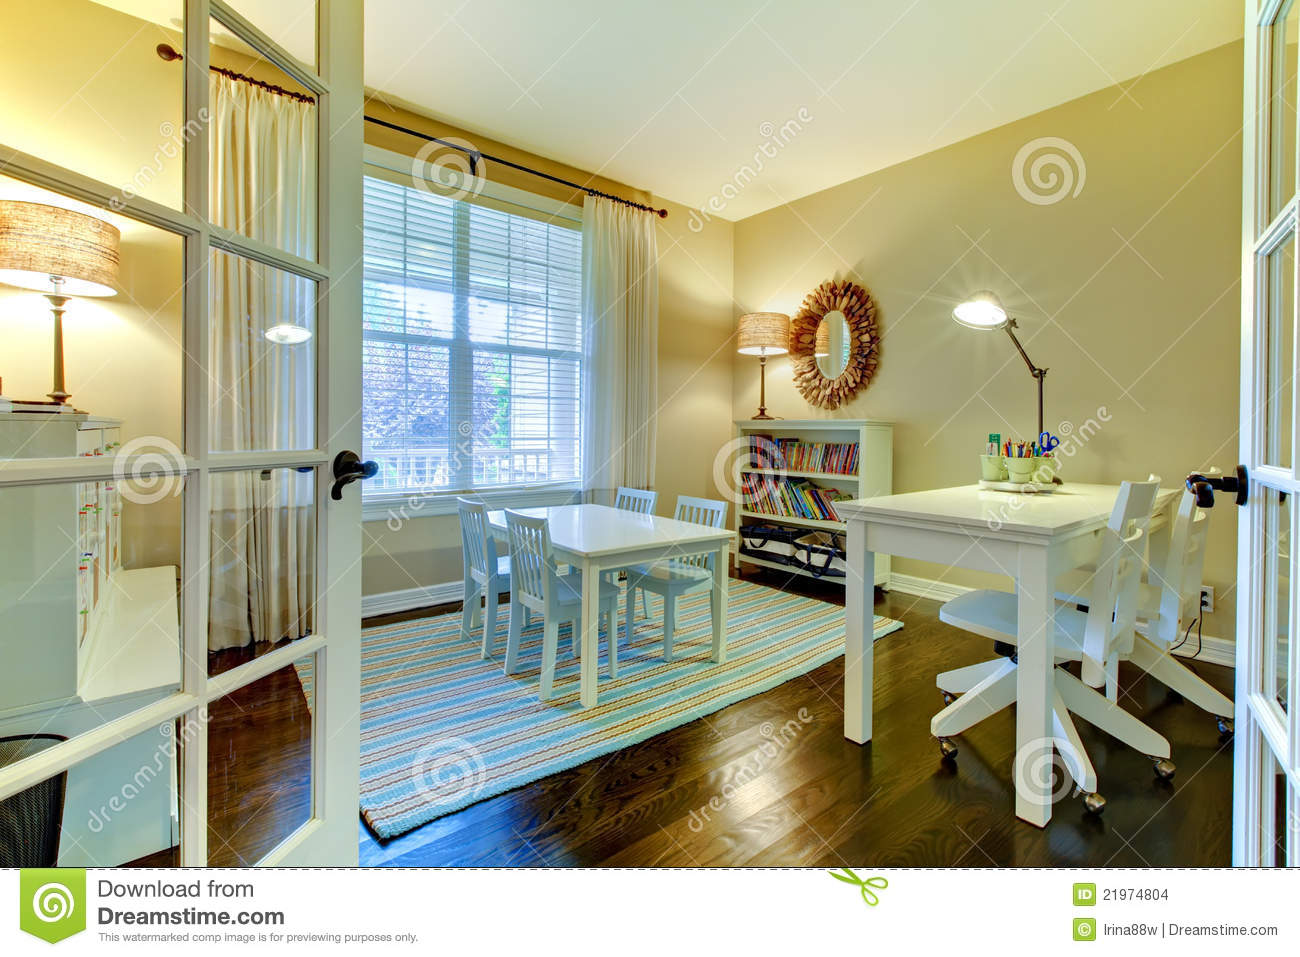 Kids Study Room Or Home School Class Interior Stock Photo Image